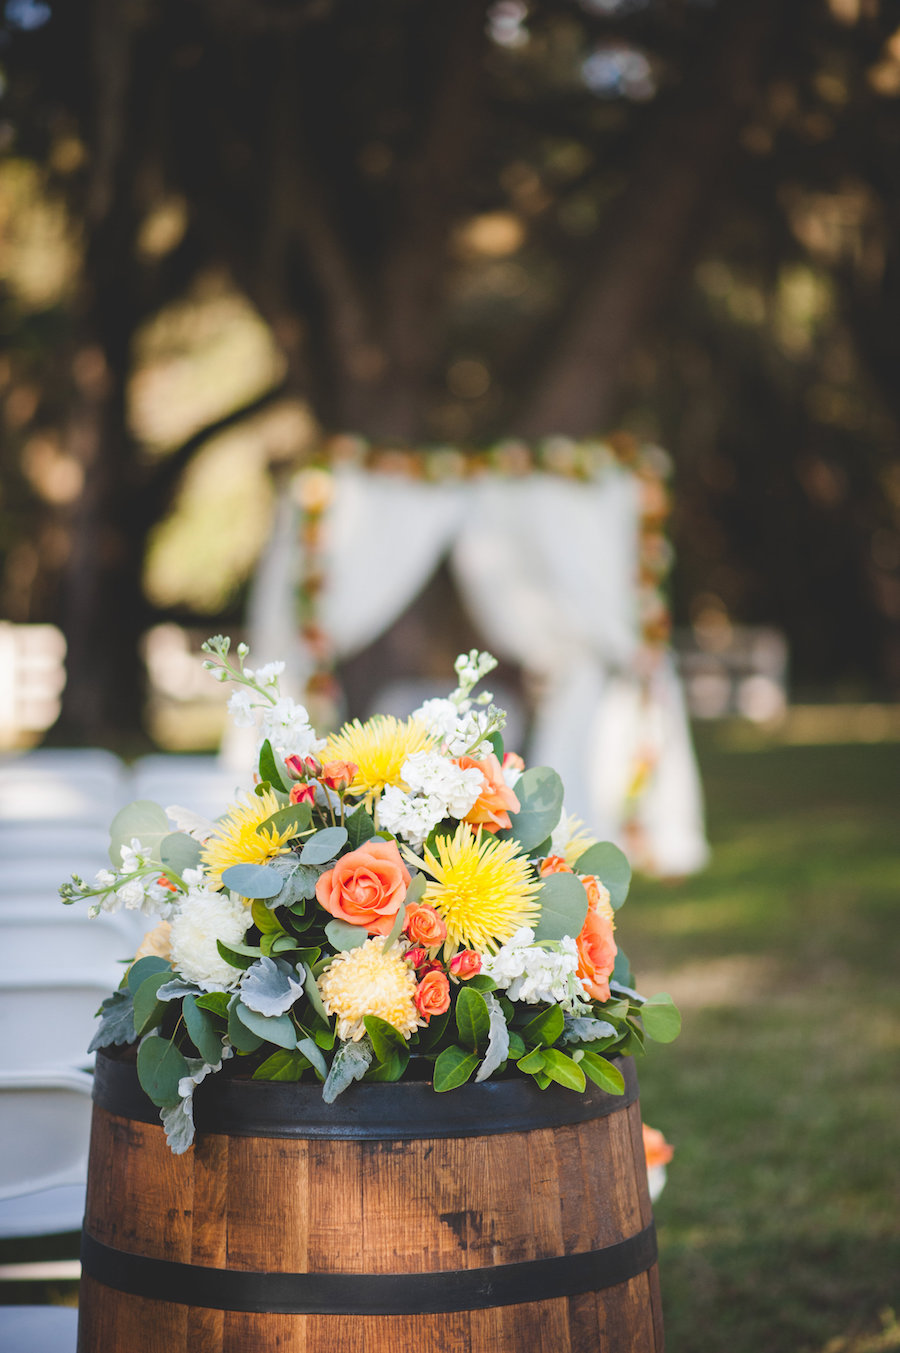 Fall Inspired Wedding Ceremony Floral Decor with Orange, Yellow Flowers, Greenery Accents and Wine Barrels